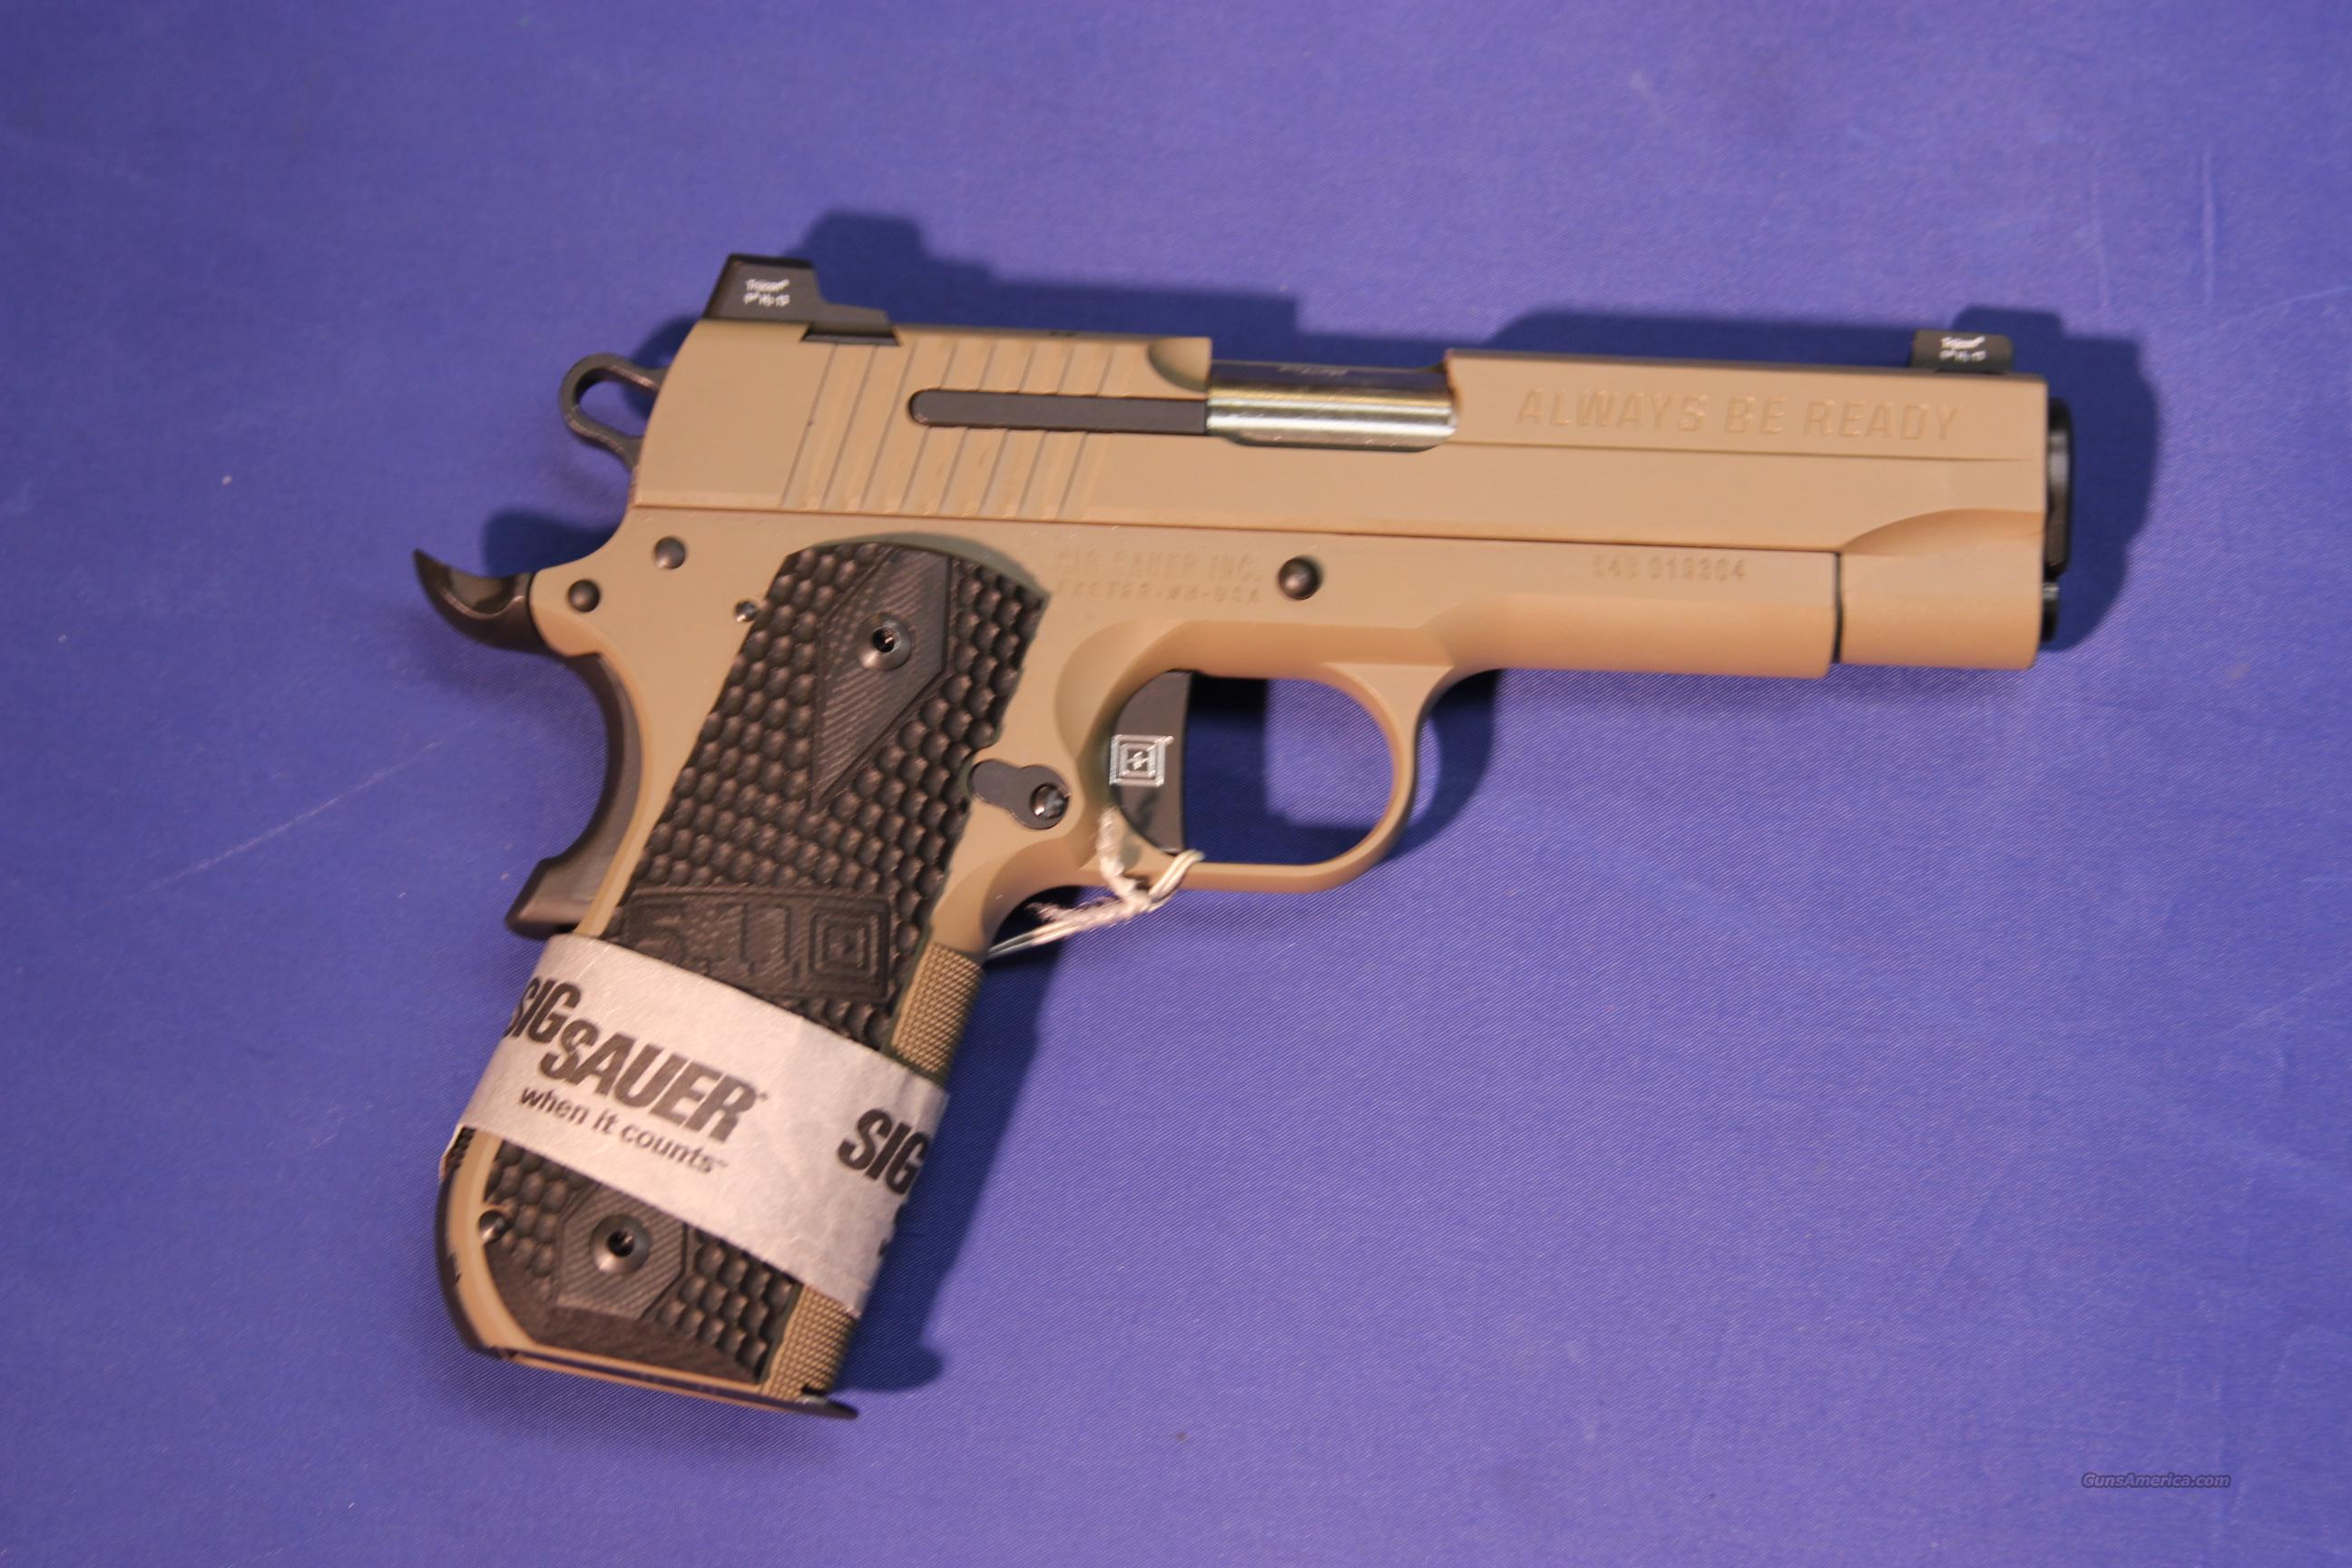 ***SOLD*** Sig Sauer 5.11 Carry 1911 .45 ACP - NEW!  Guns > Pistols > Sig - Sauer/Sigarms Pistols > 1911